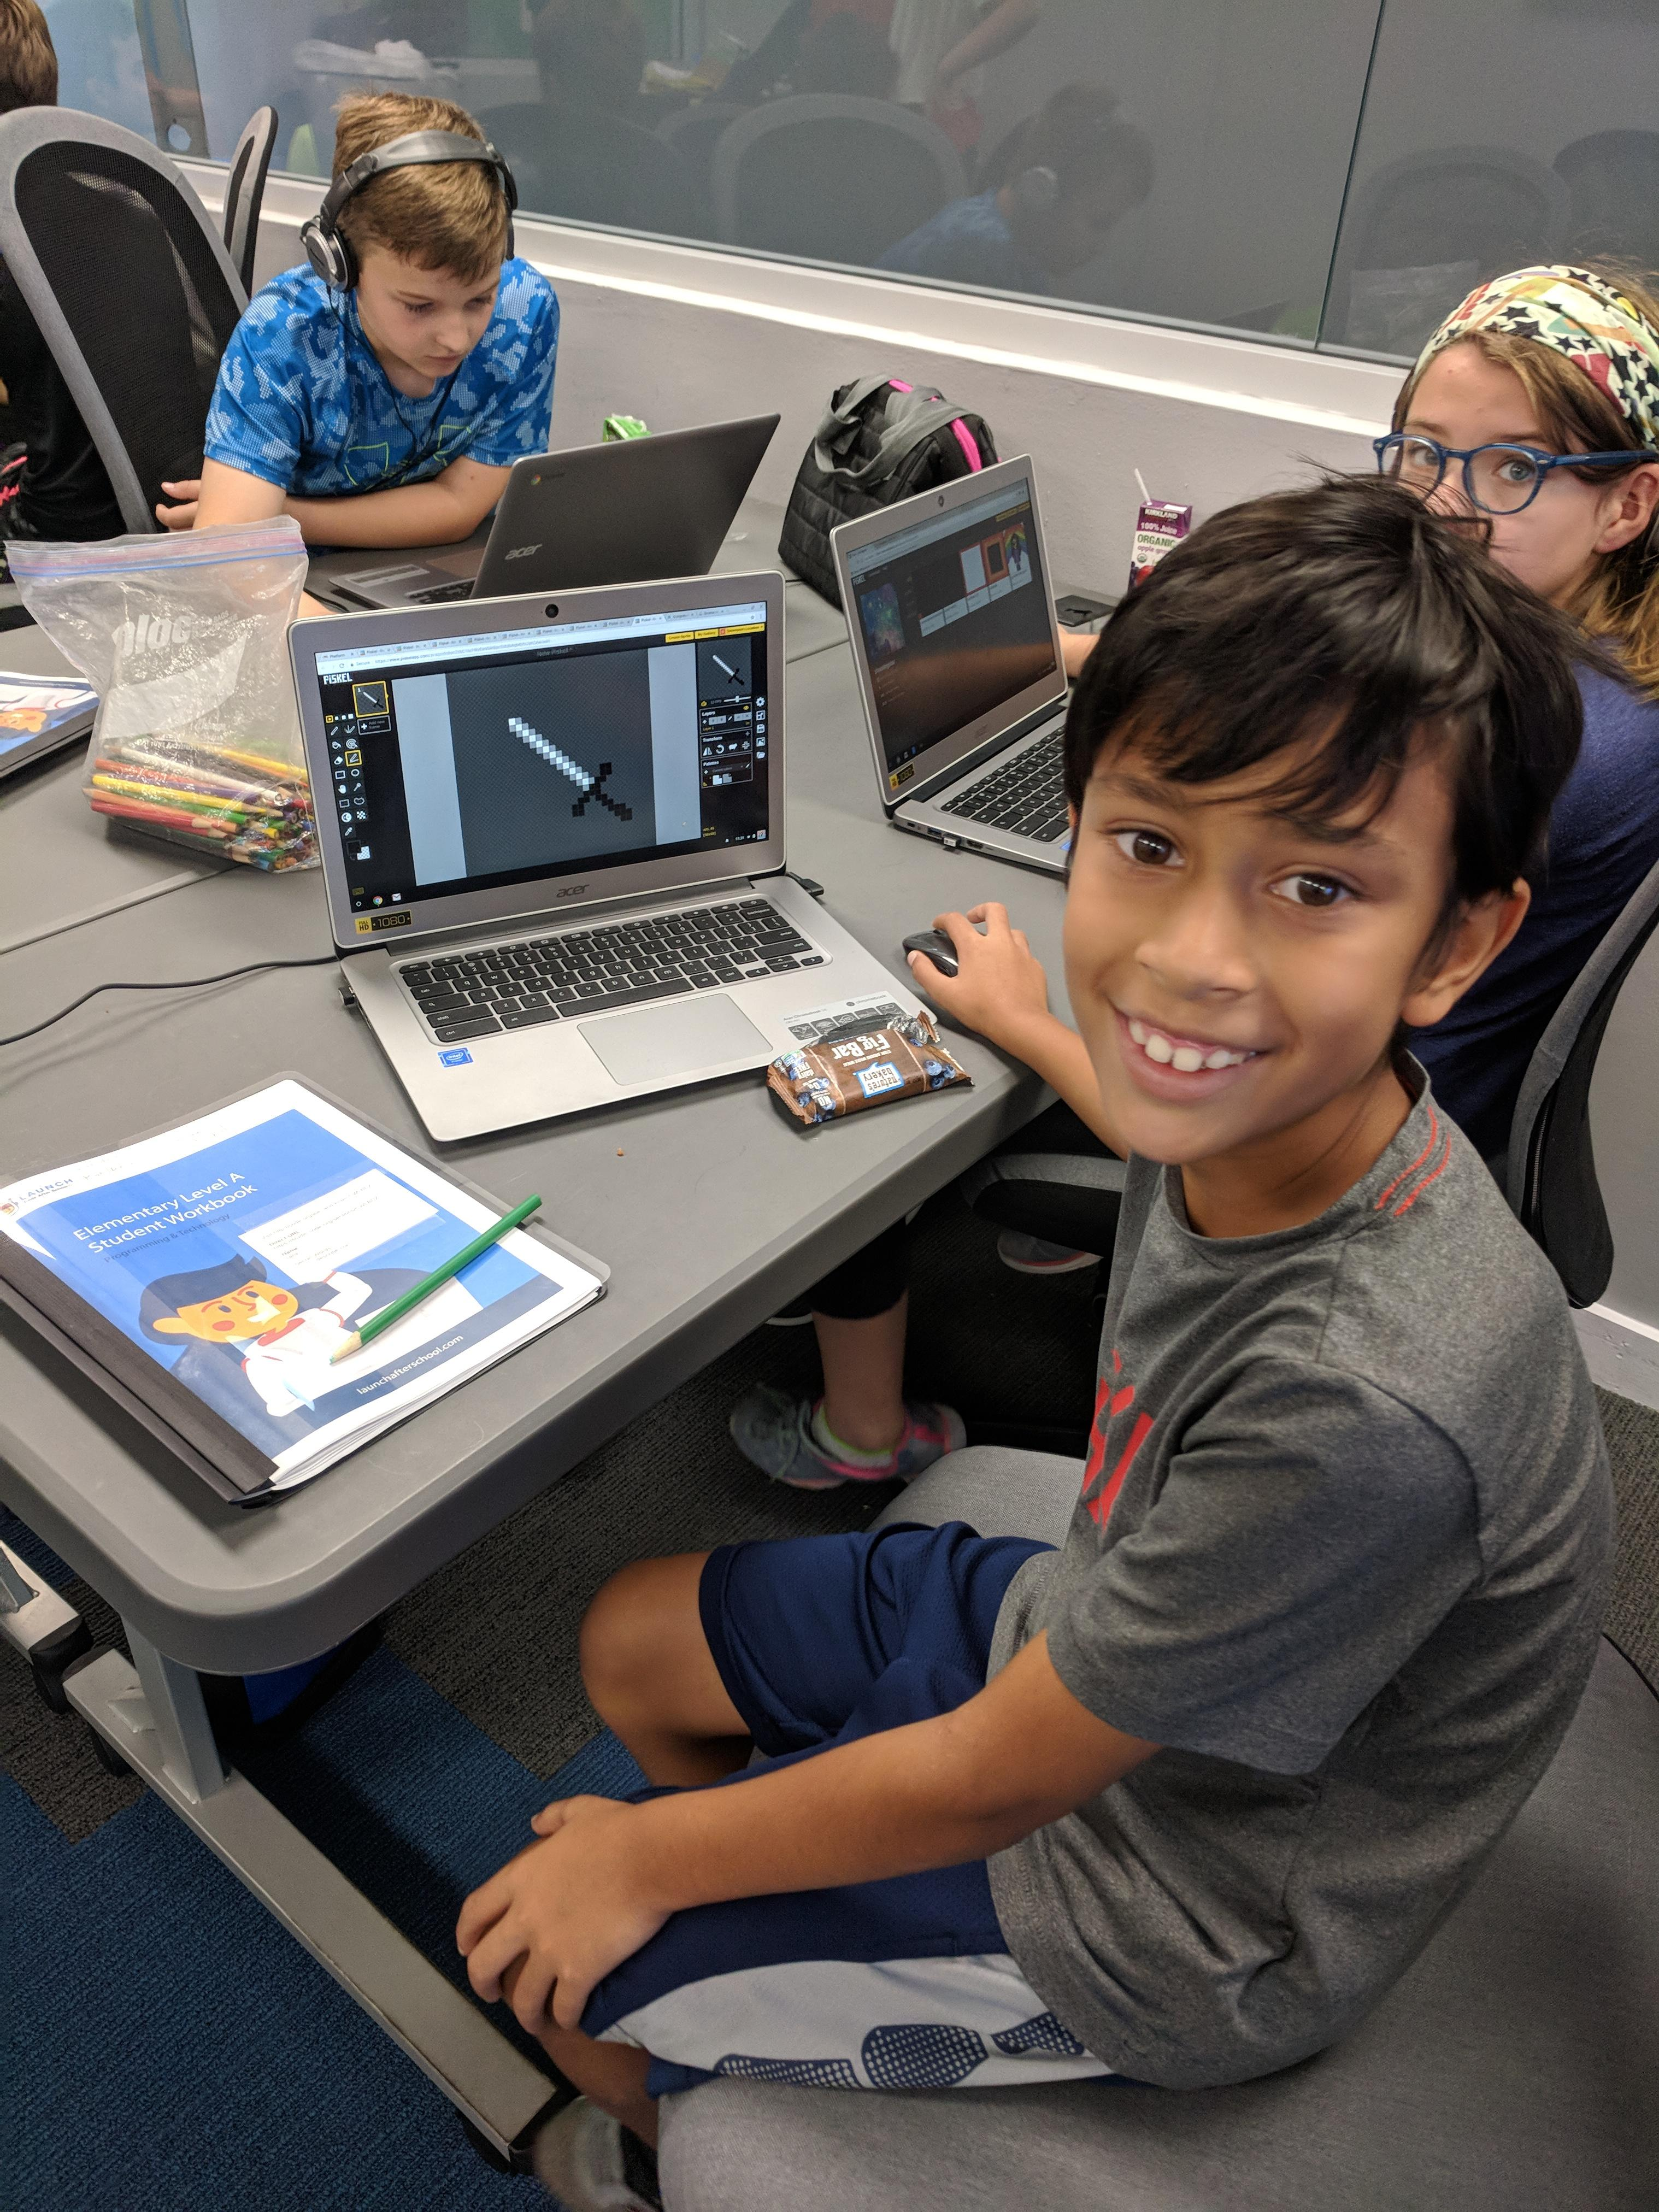 Launch Code After School image 9